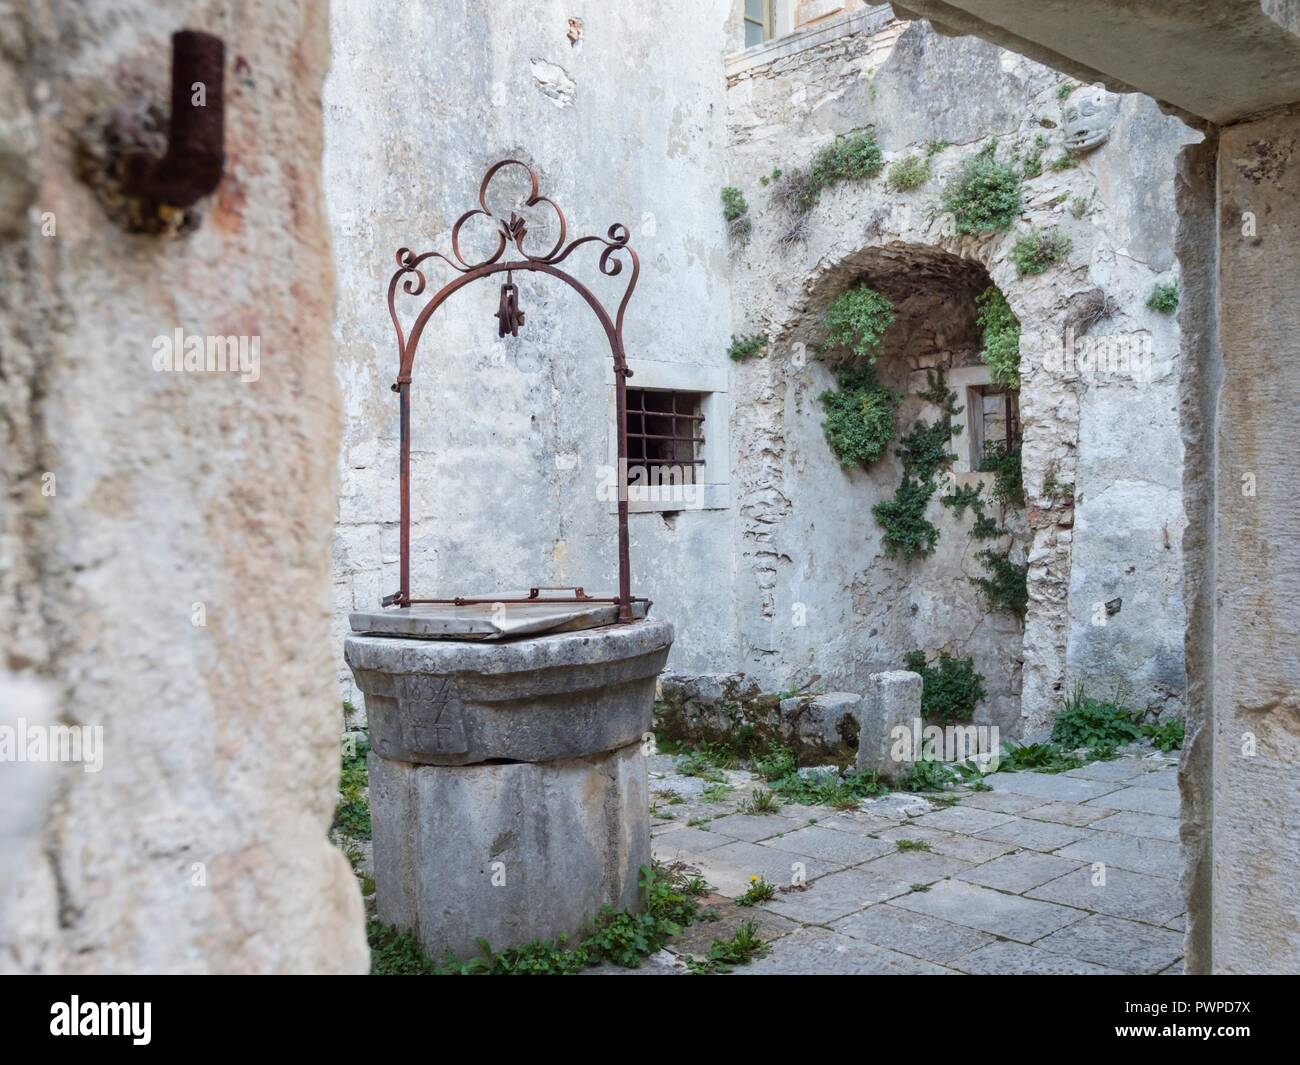 Remains of old town Krsan in Istria Croatia Europe - Stock Image